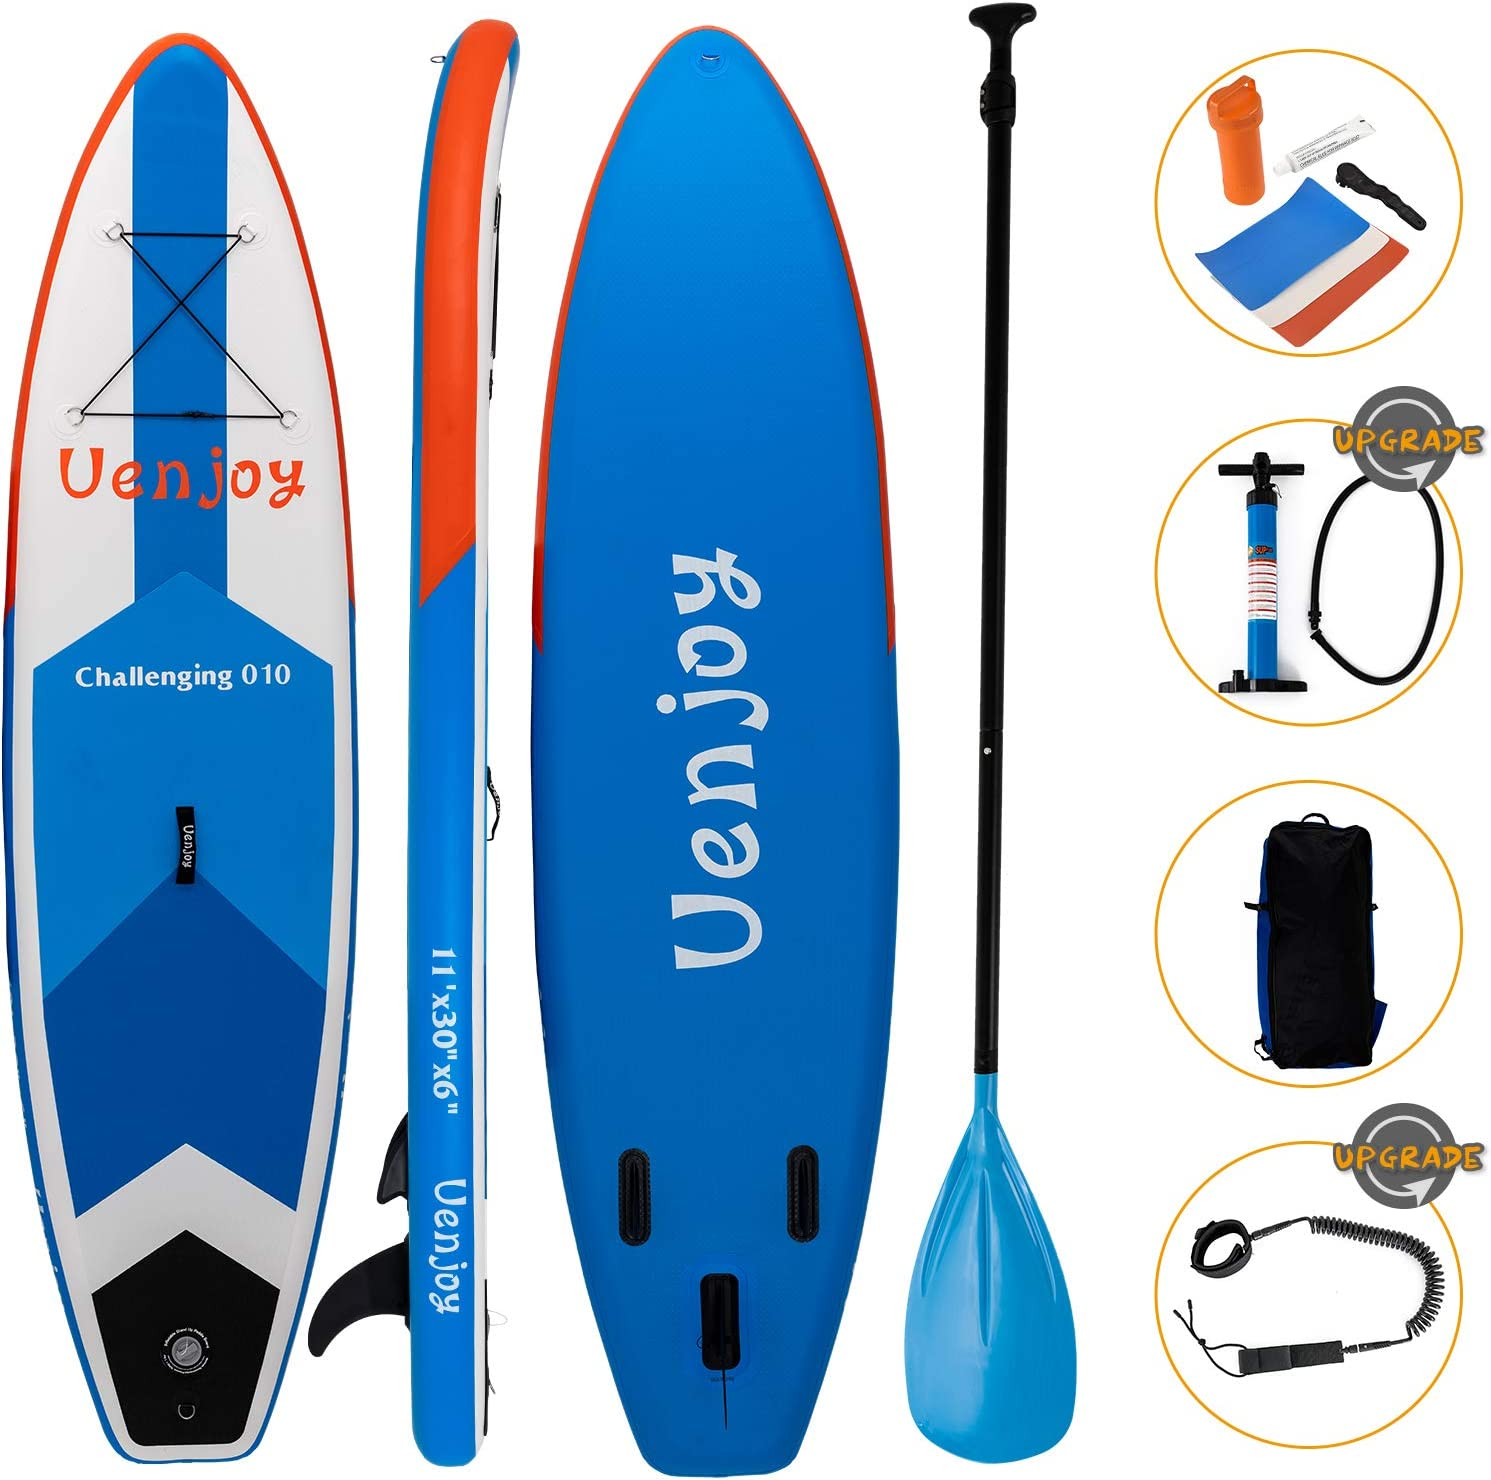 Uenjoy Inflatable Sup W 3 Years Warranty 11 30 x6 All Around Paddle Board, W Full Accessories, Perfect for Yoga Fishing Touring